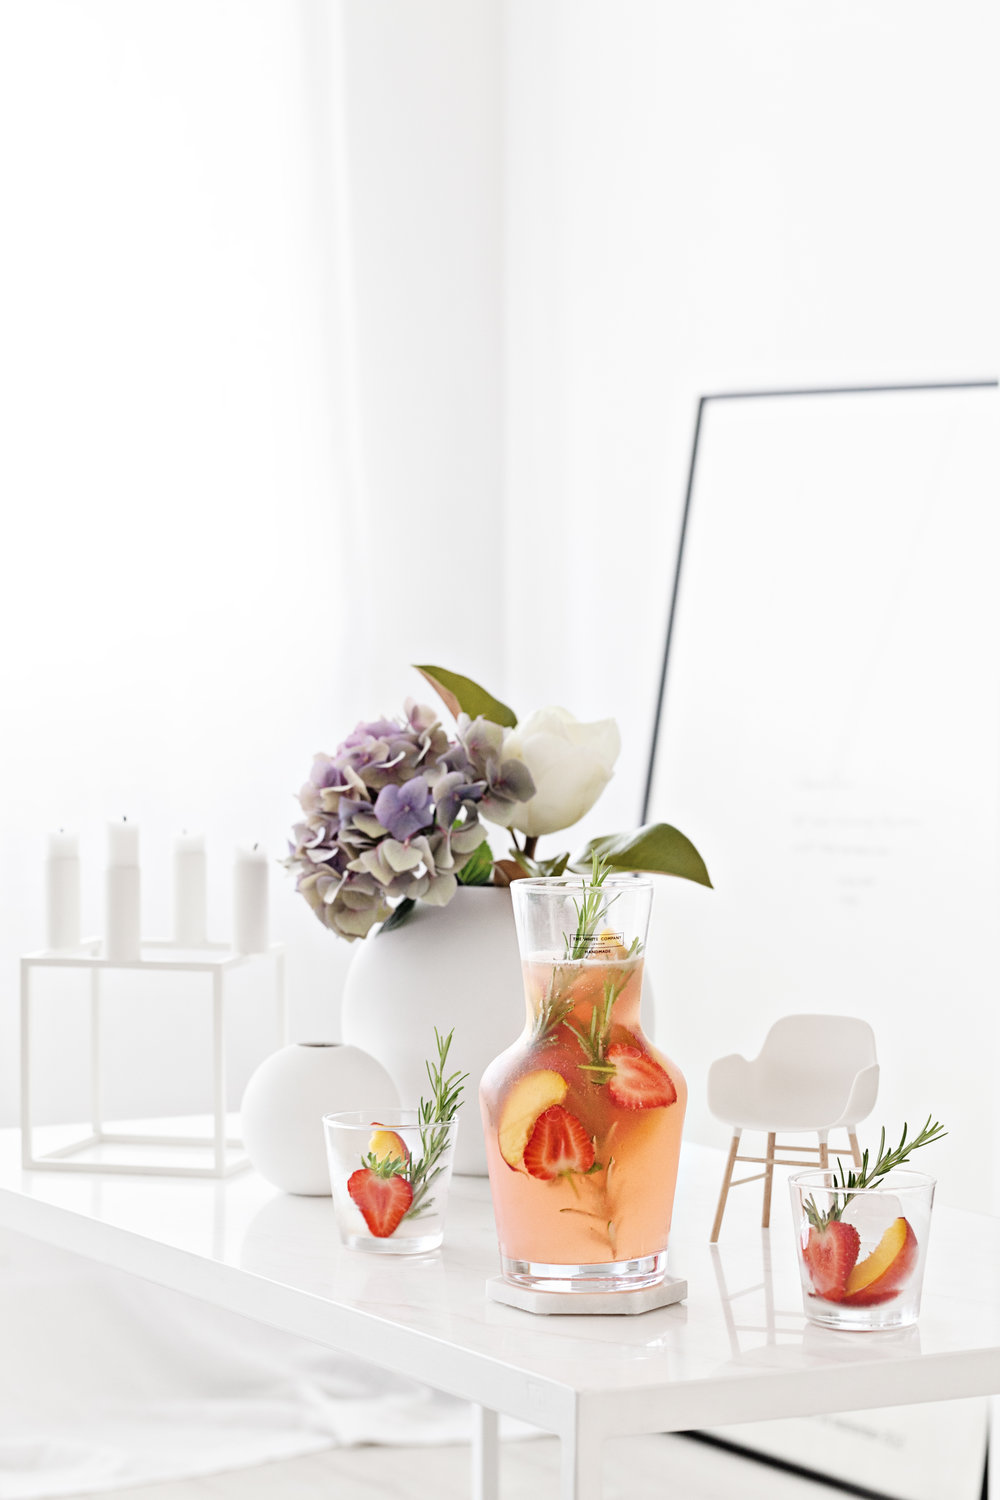 Carafe & Tumbler Set from   The White Company   | Candle Holders from   By Lassen   | Round Ceramic Vases from   Cooee Design   | Form Chair from   Norman Copenhagen  |  White Marble Table from   Serax